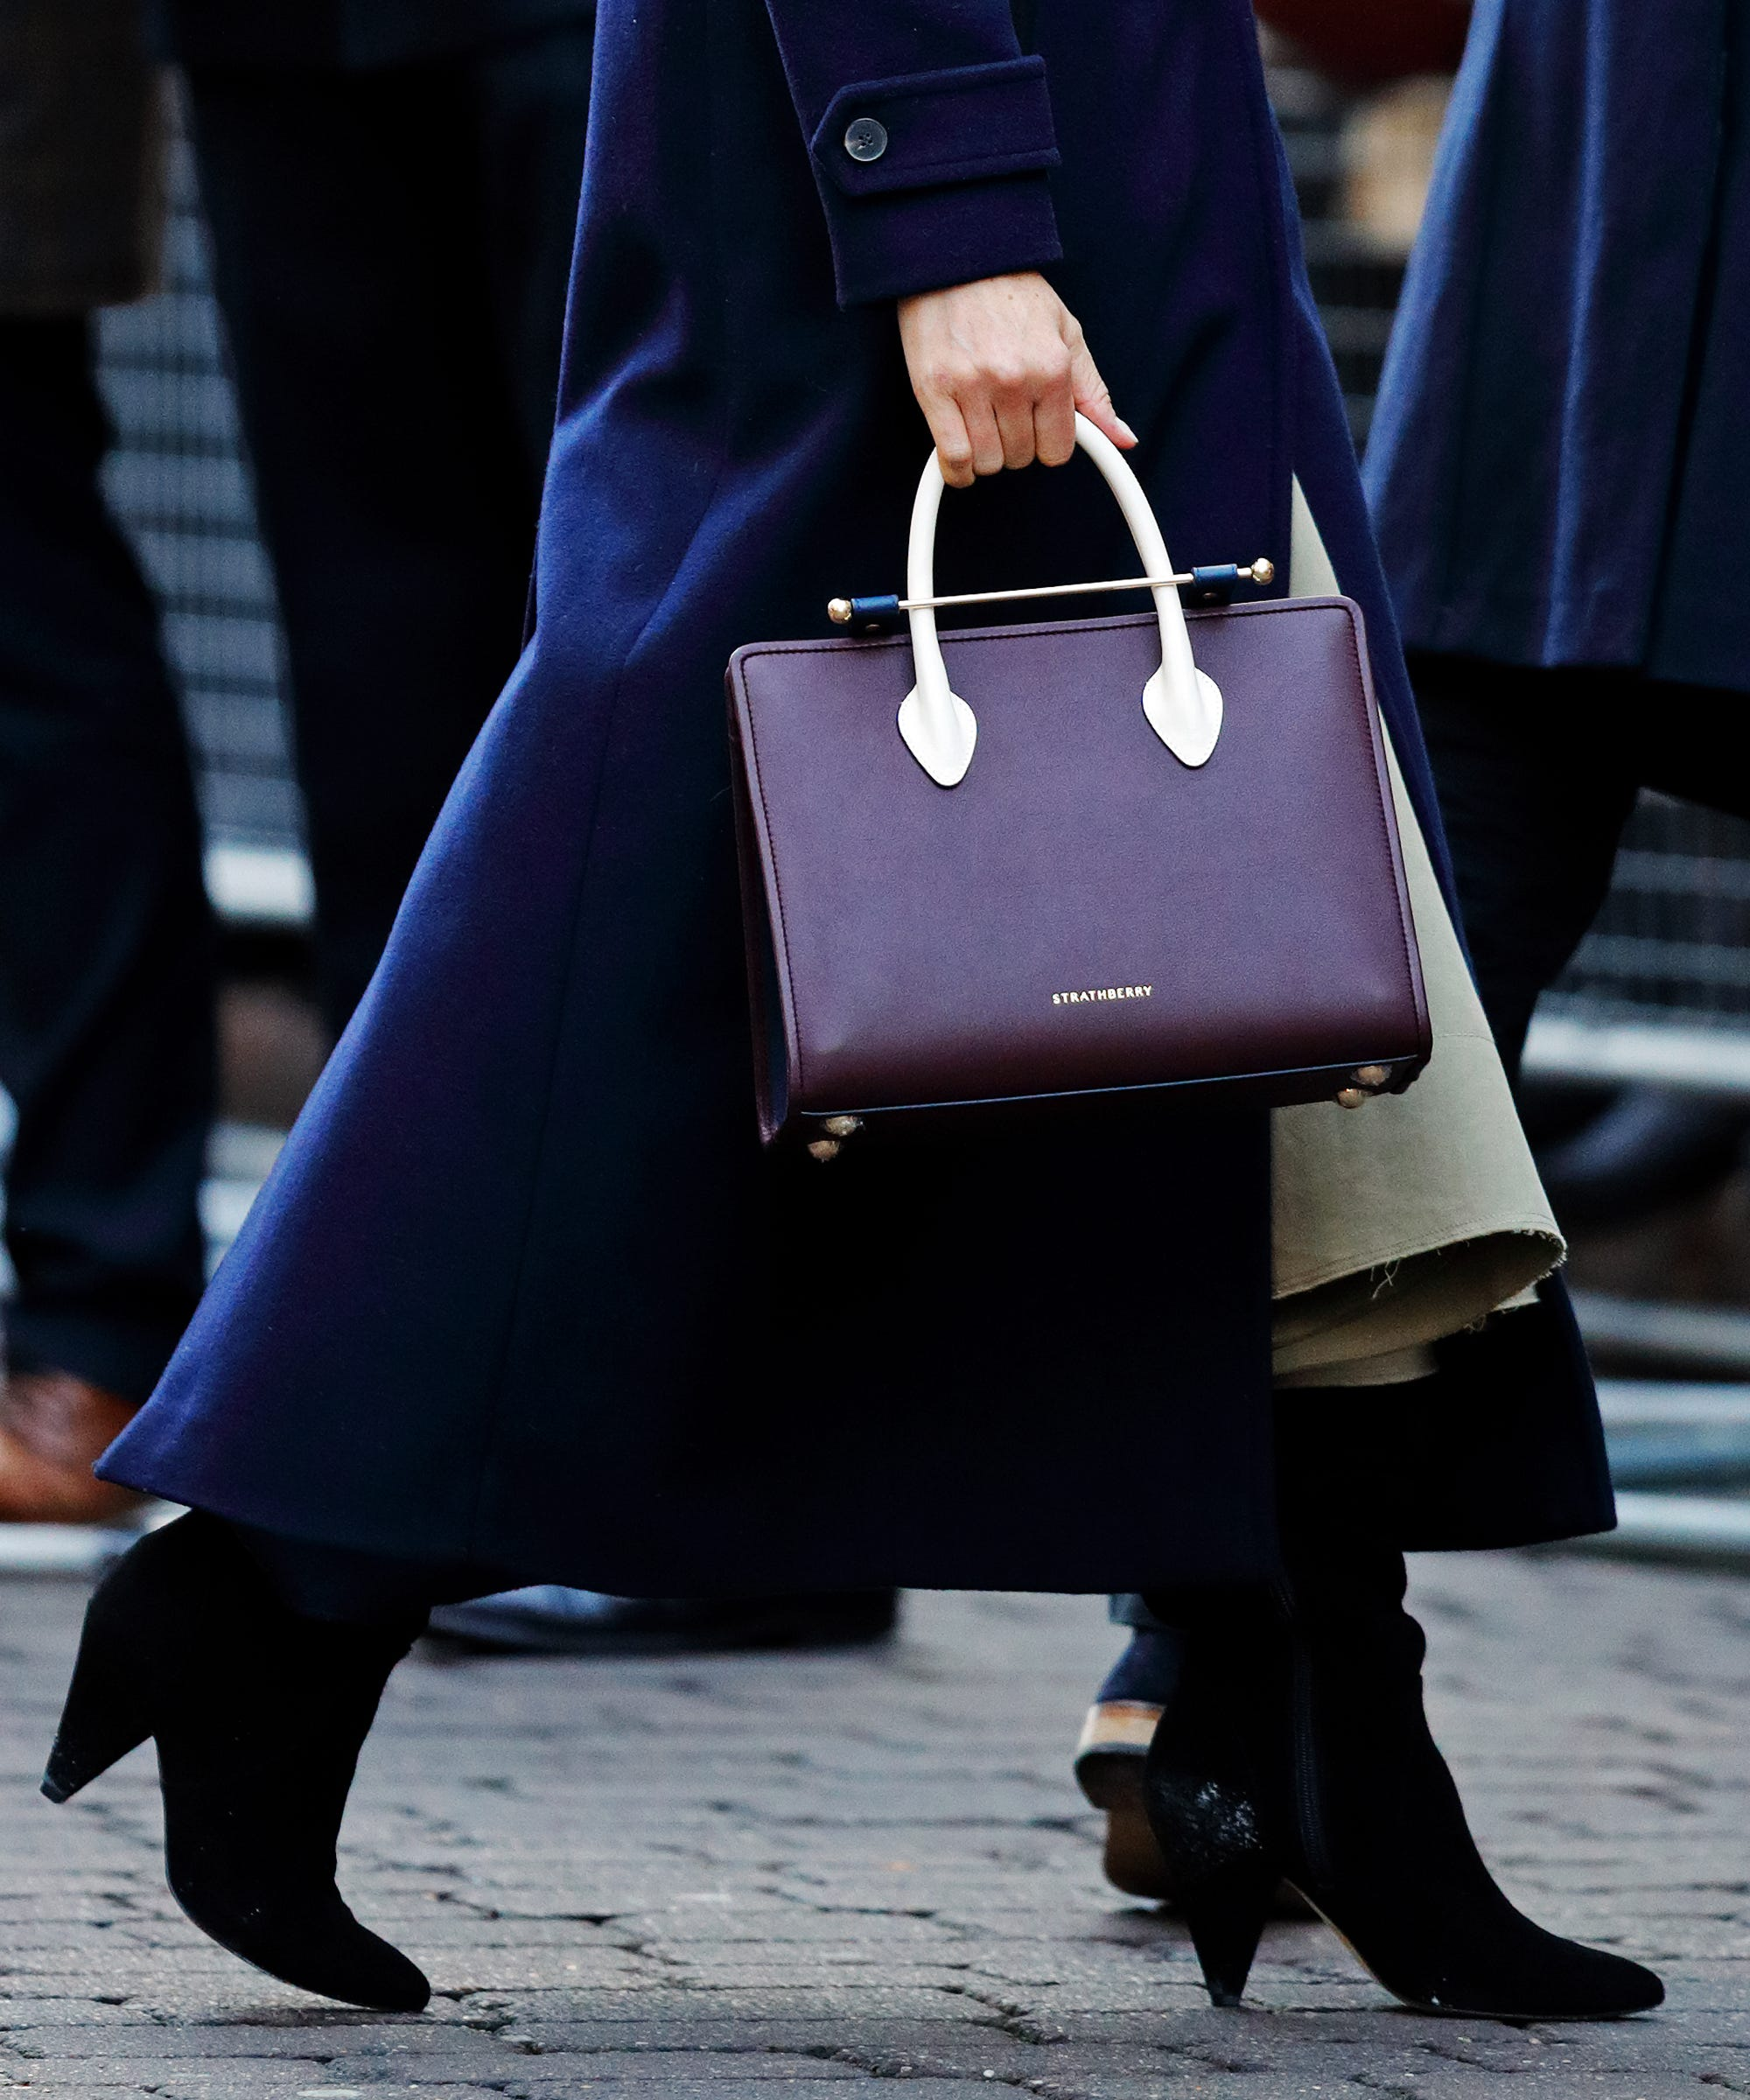 Meghan Markle Strathberry Tote Look-A-Like - Shop 01405aa496600